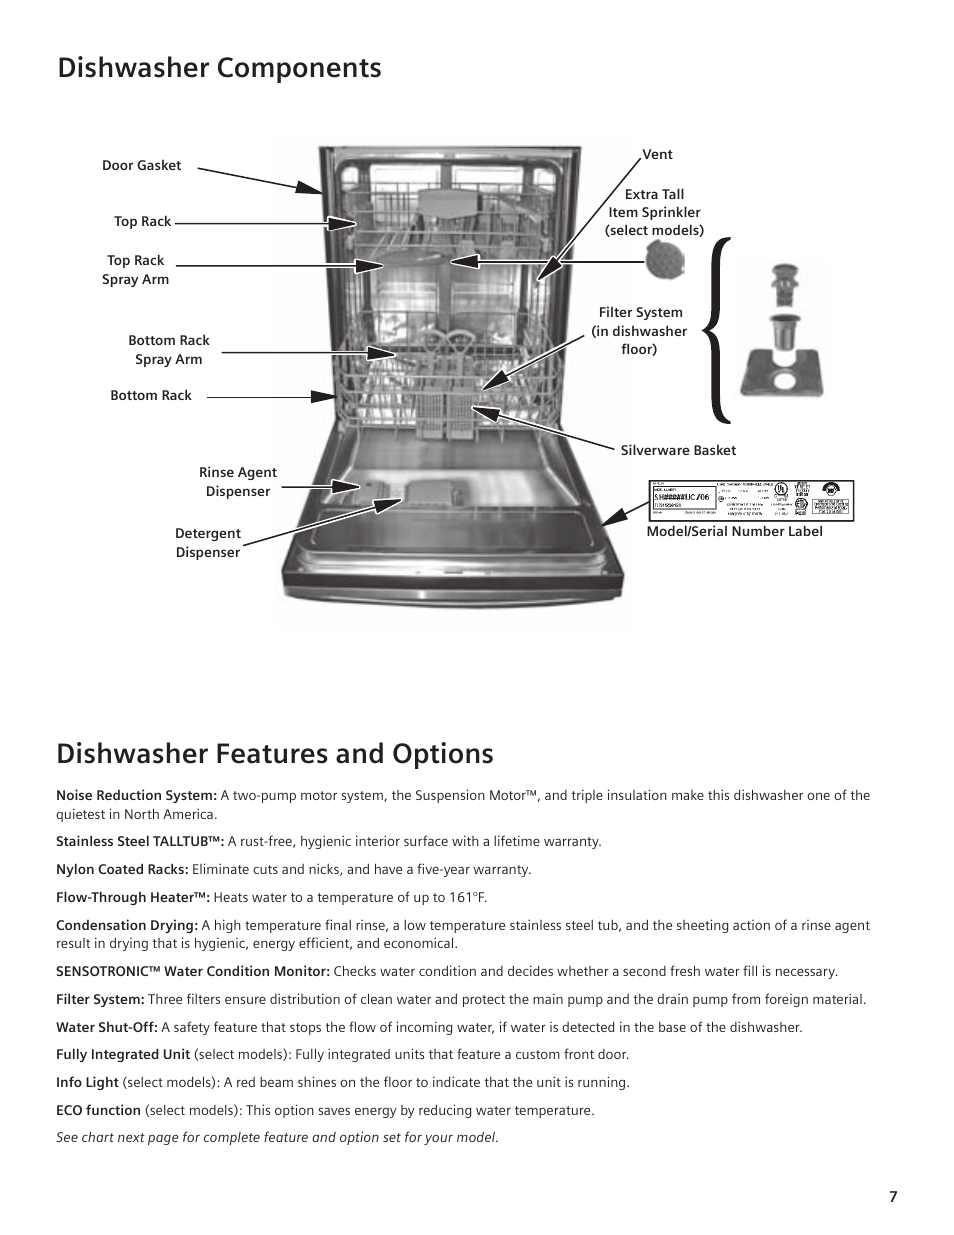 Dishwasher components, Dishwasher features and options | Bosch SHE44C User  Manual | Page 7 /